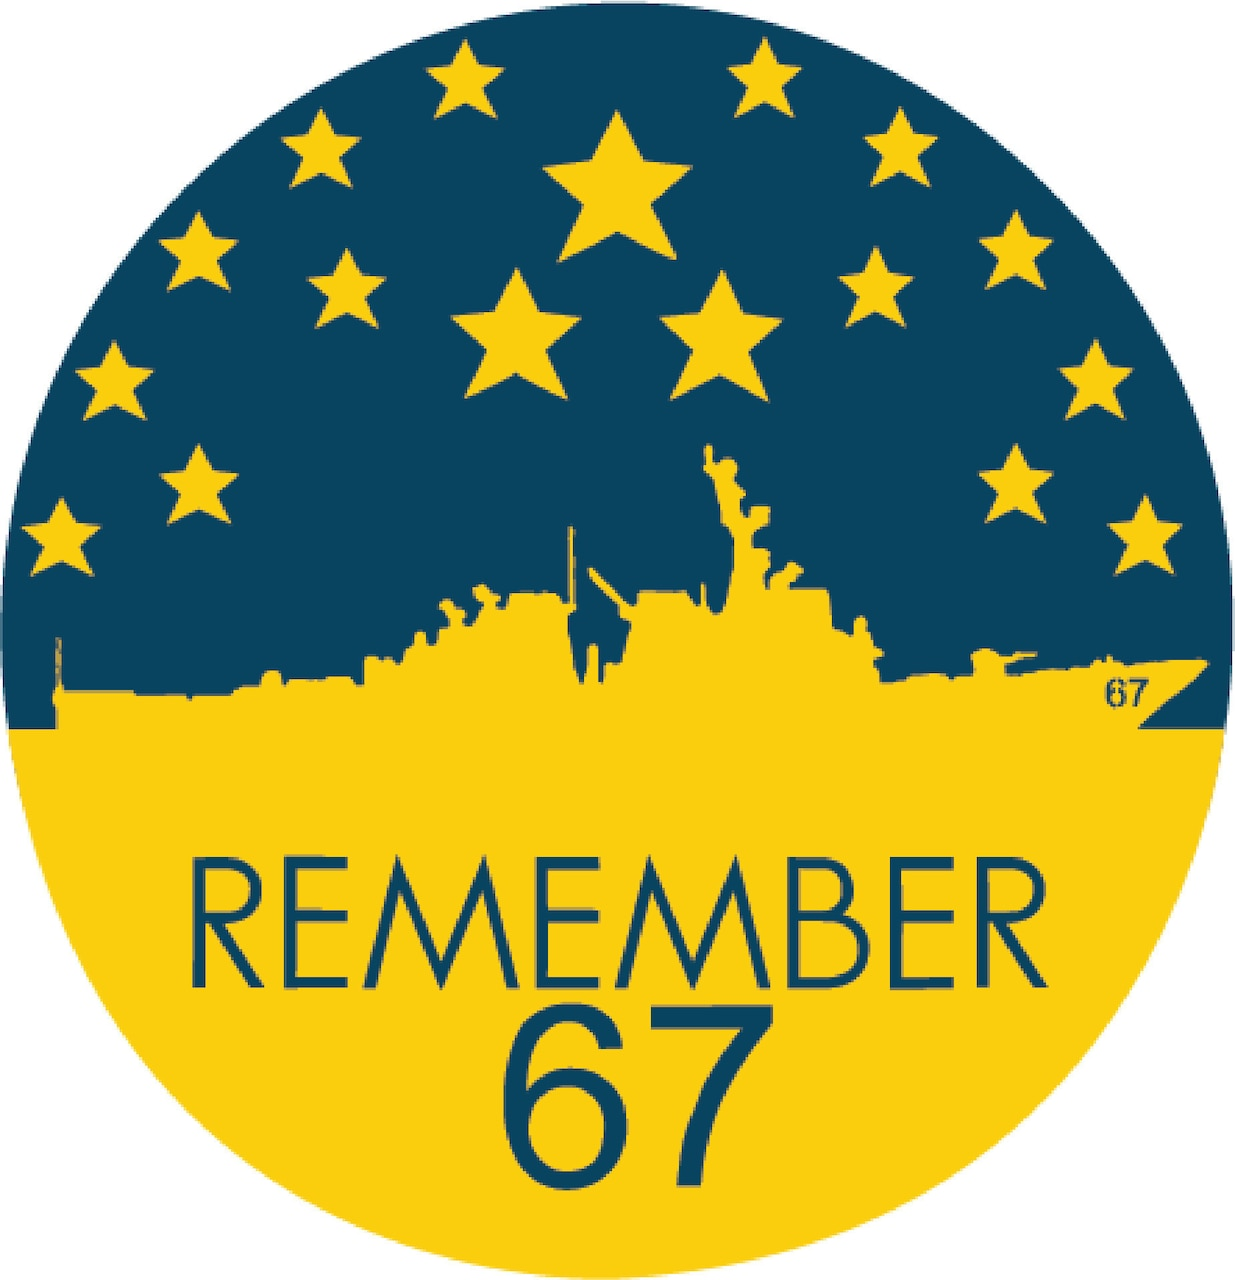 The official logo for 20th anniversary of the Oct. 12, 2000, terrorist attack on Arleigh Burke-class guided-missile destroyer USS Cole (DDG 67), where 17 Sailors were killed and 37 injured while the ship refueled in Yemen.